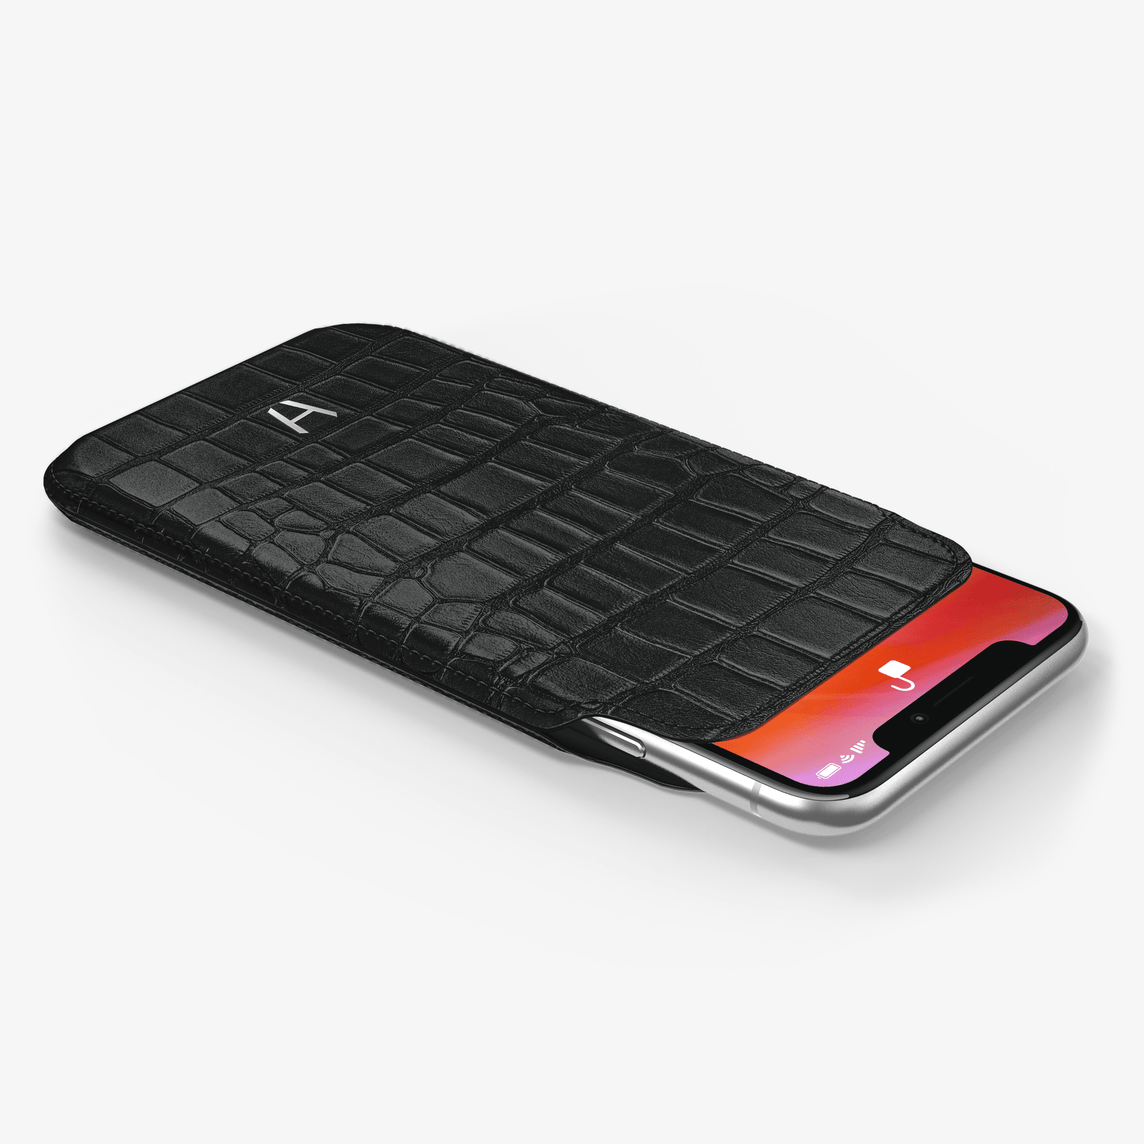 Alligator [iPhone Sleeve Case] [model:iphone-xs-case] [colour:black] [finishing:stainless-steel]